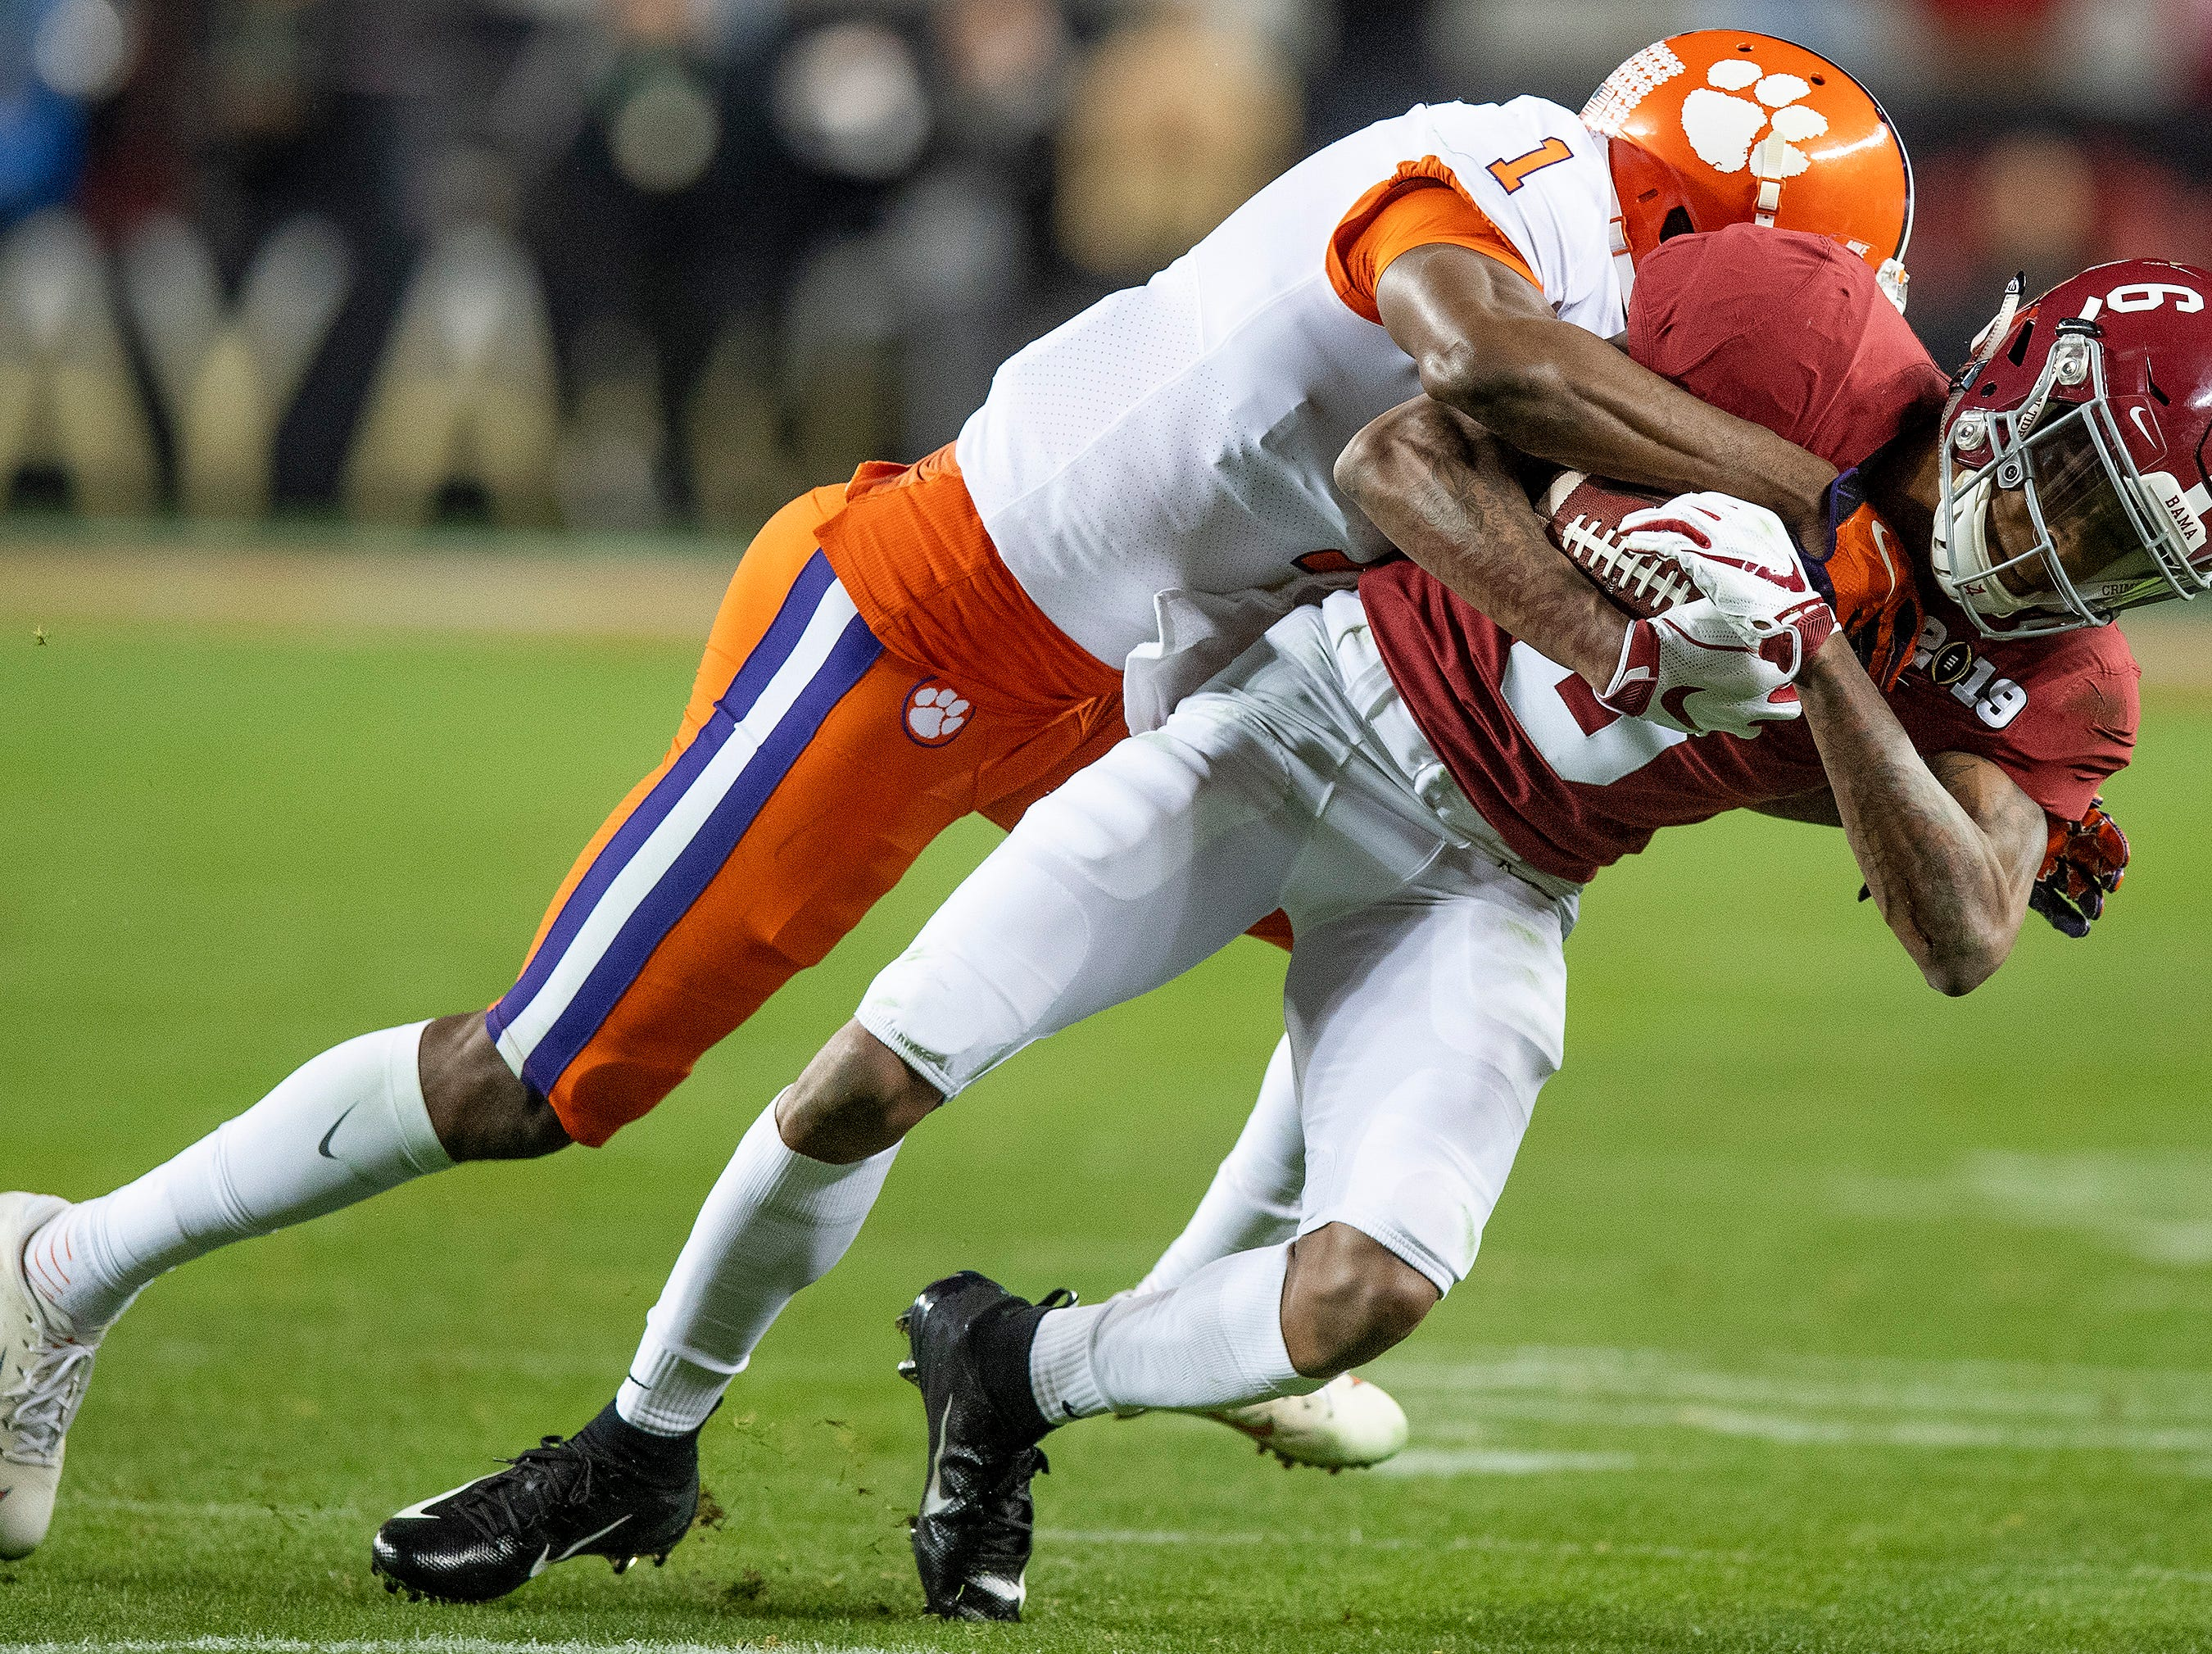 Alabama wide receiver DeVonta Smith (6) is stopped by Clemson cornerback Trayvon Mullen (1) In second half action of the College Football Playoff National Championship game at Levi's Stadium in Santa Clara, Ca., on Monday January 7, 2019.